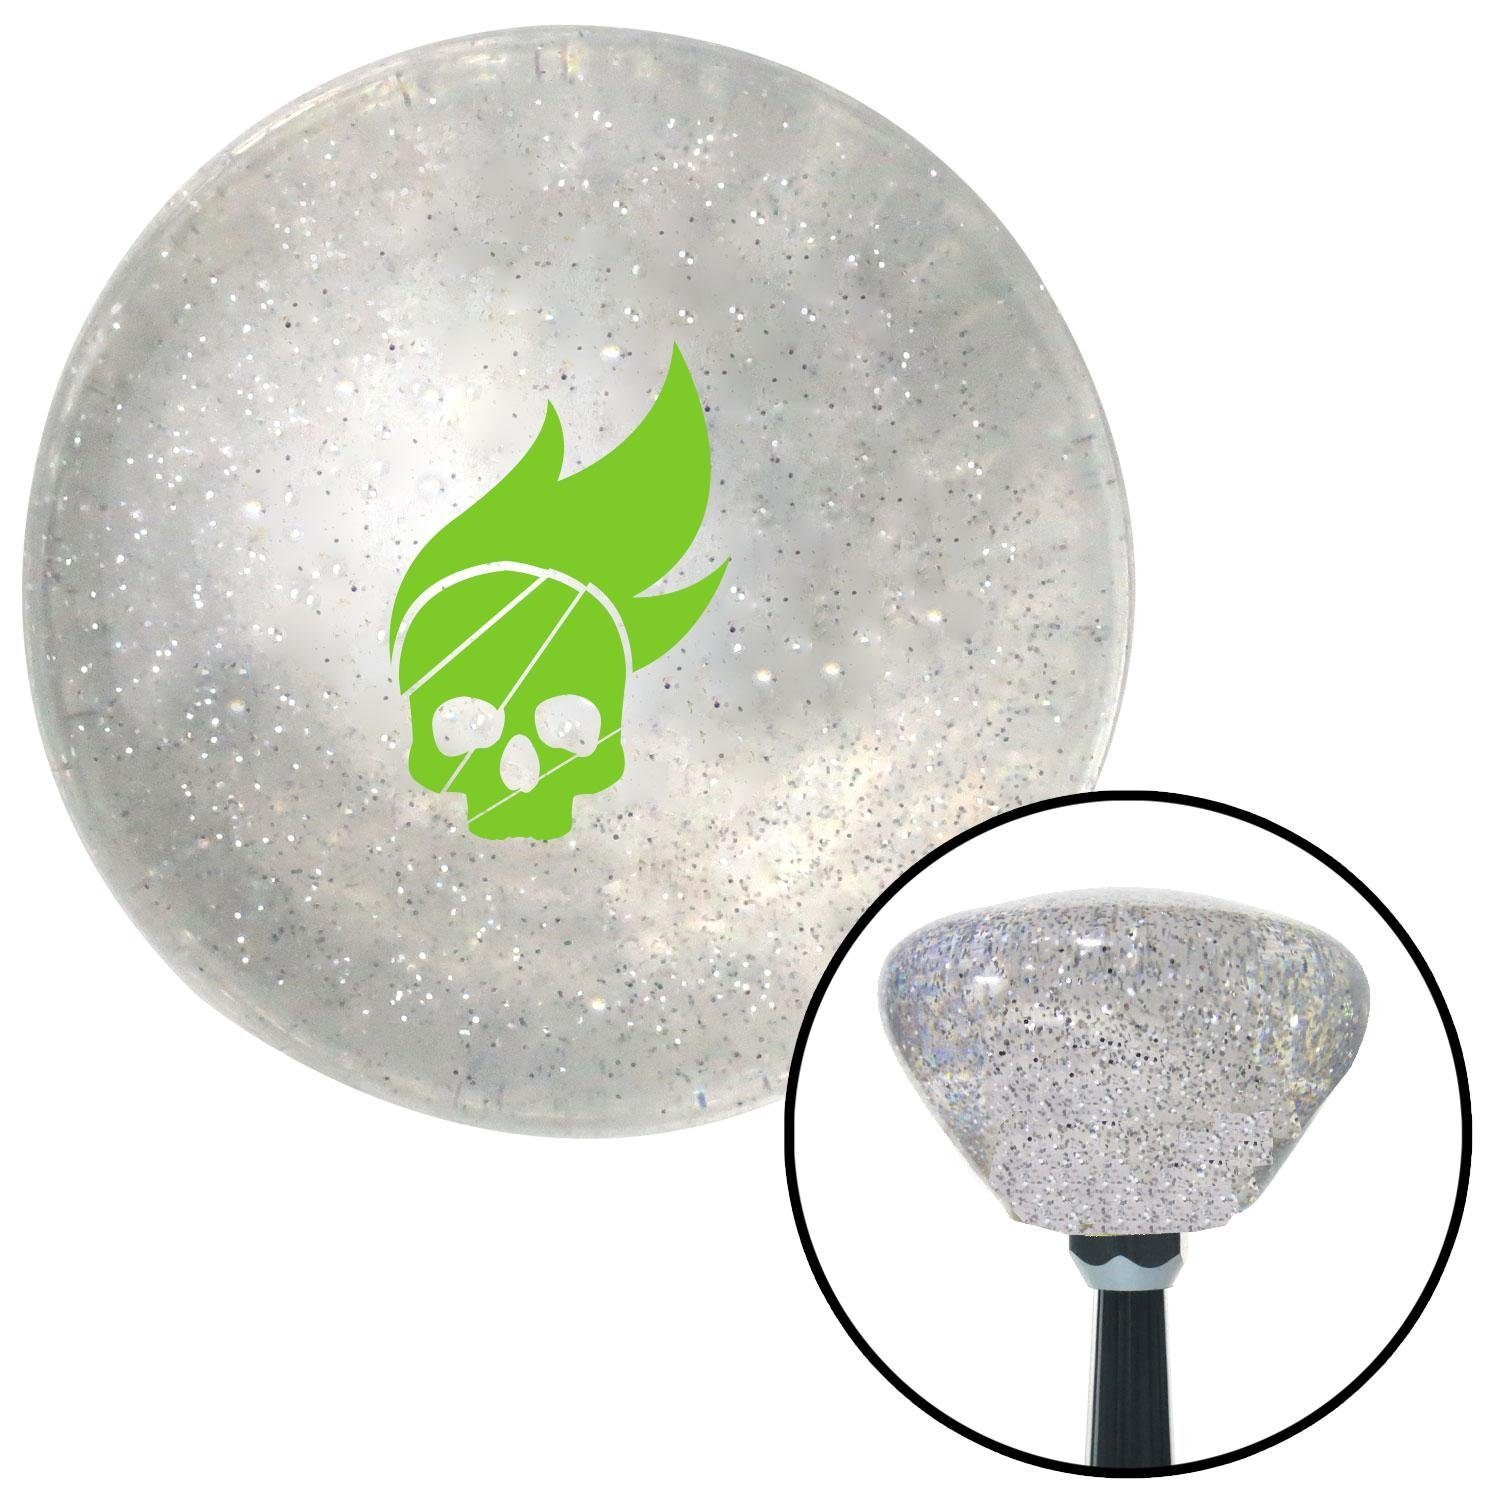 Green Skull Flame American Shifter 162998 Clear Retro Metal Flake Shift Knob with M16 x 1.5 Insert